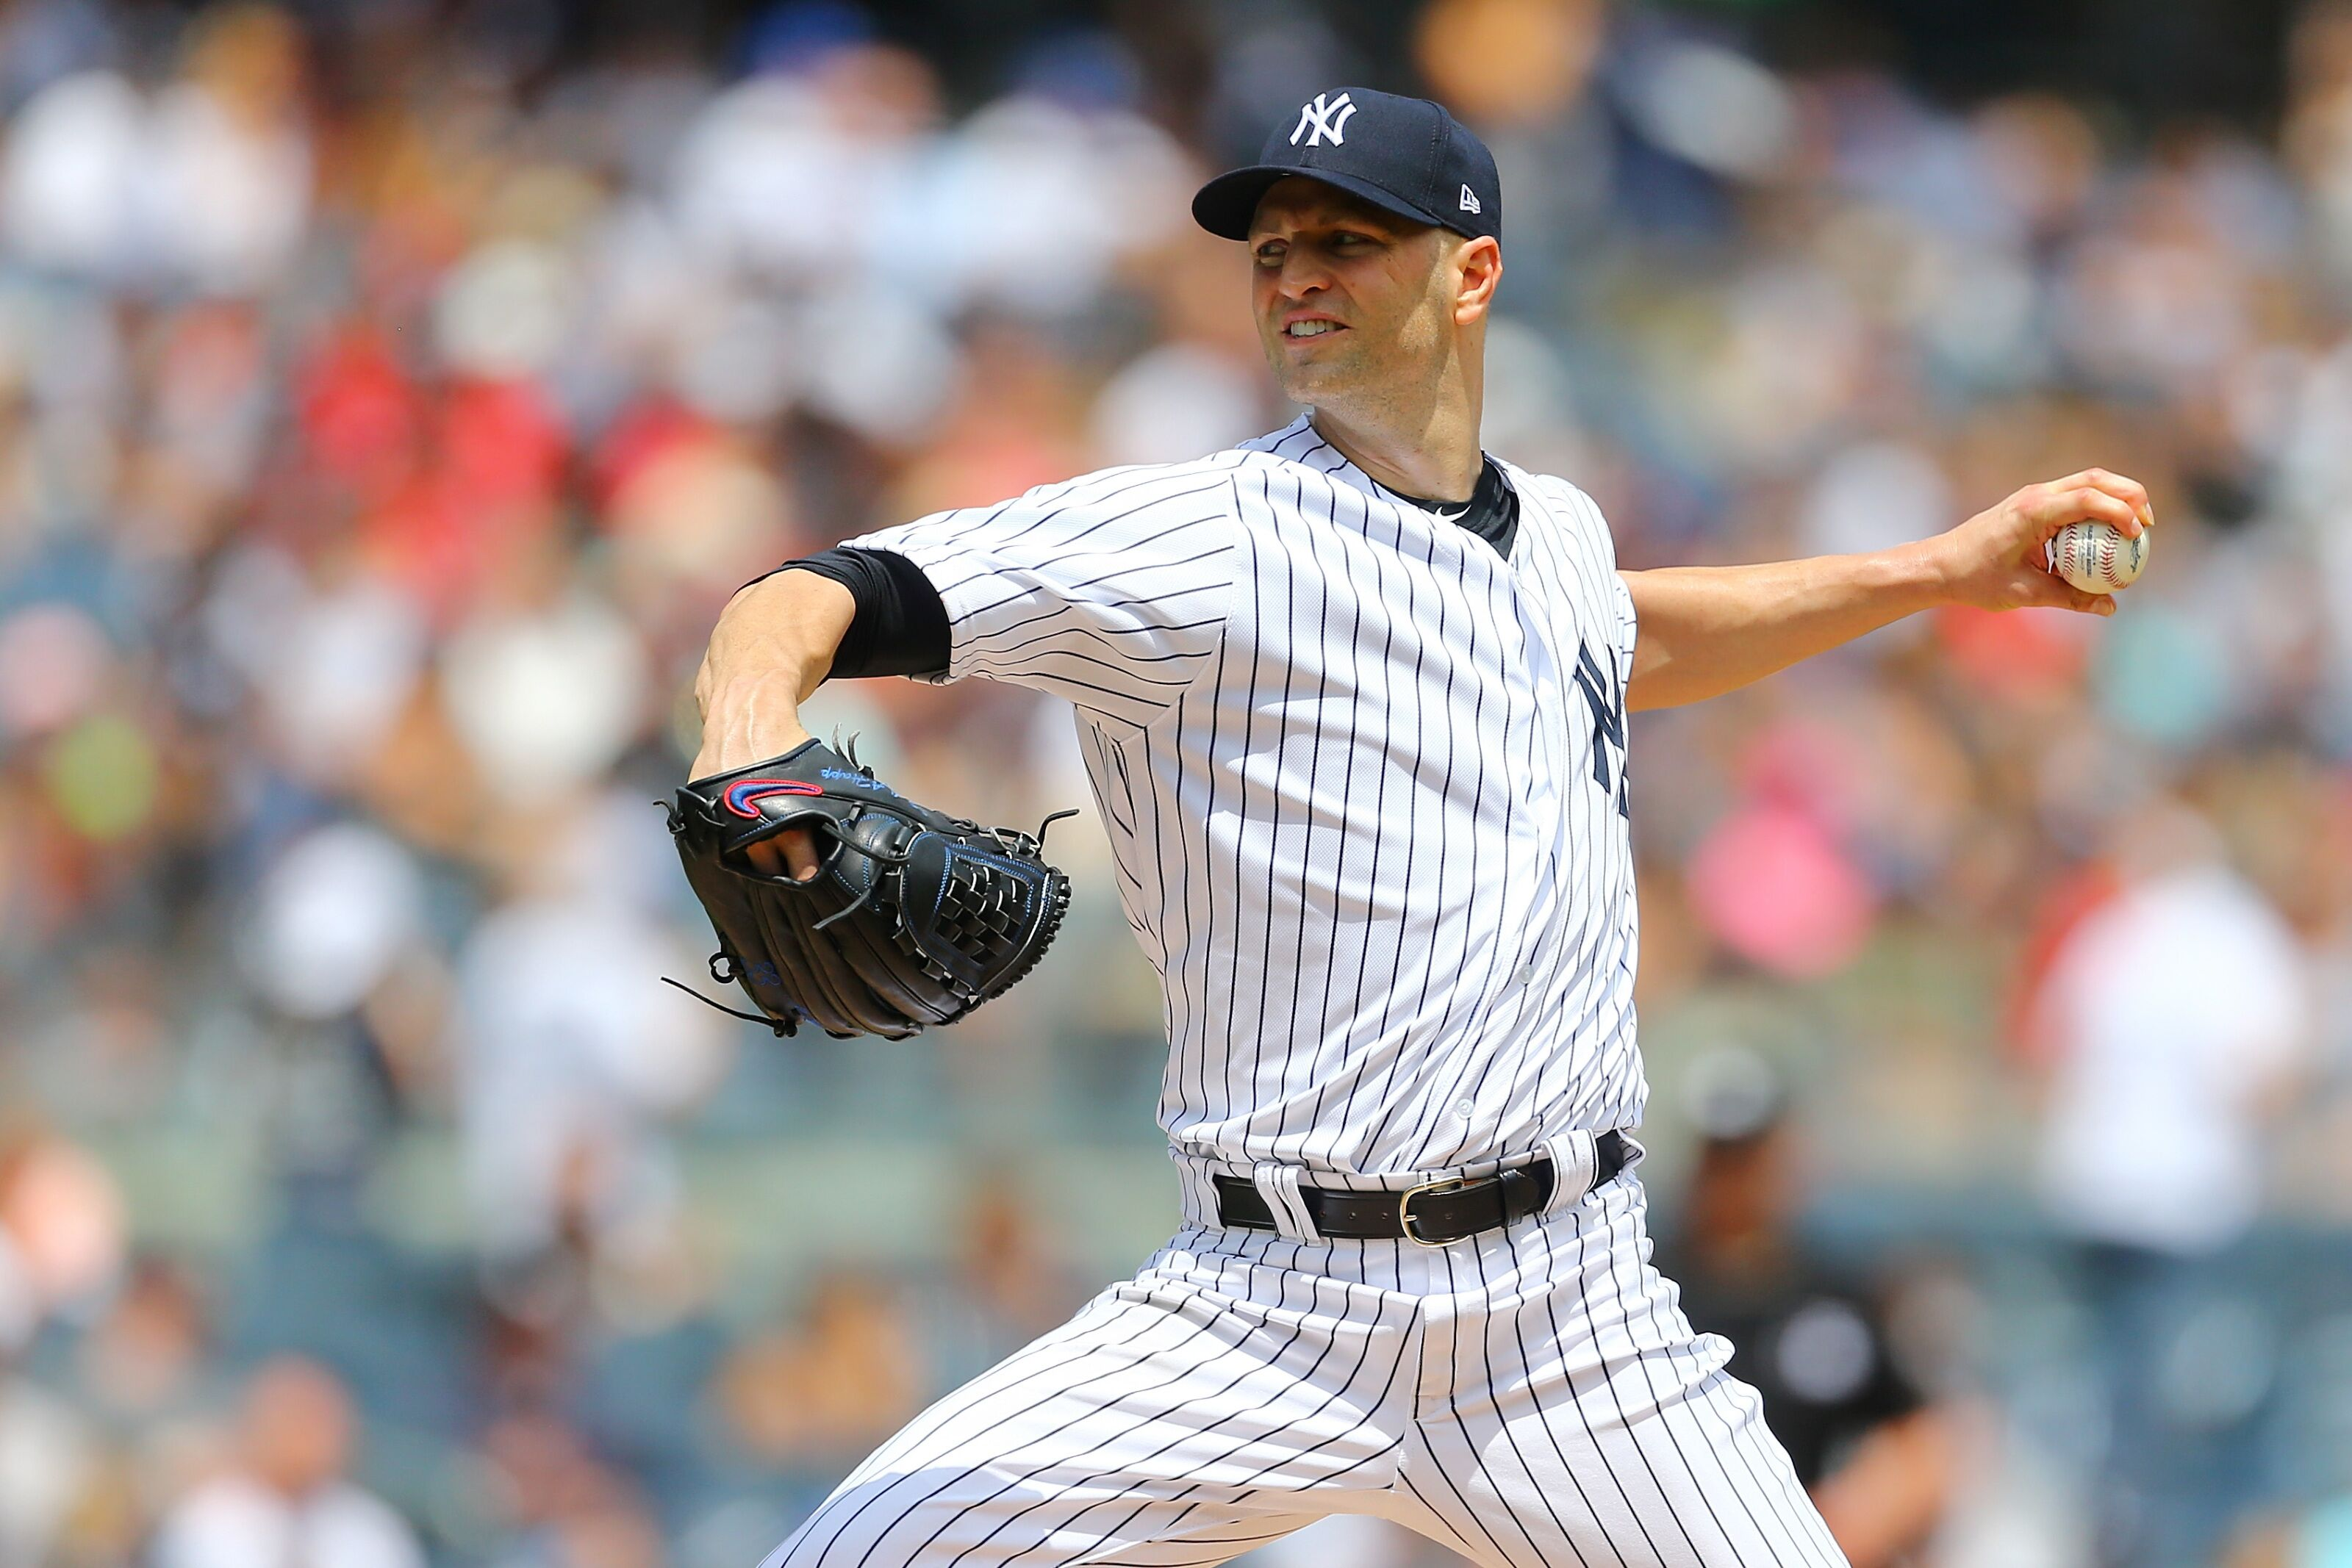 NEW YORK, NY - JULY 29: J.A. Happ #34 of the New York Yankees pitches in the first inning against the Kansas City Royals at Yankee Stadium on July 29, 2018 in the Bronx borough of New York City. New York Yankees defeted the Kansas City Royals 6-3. (Photo by Mike Stobe/Getty Images)